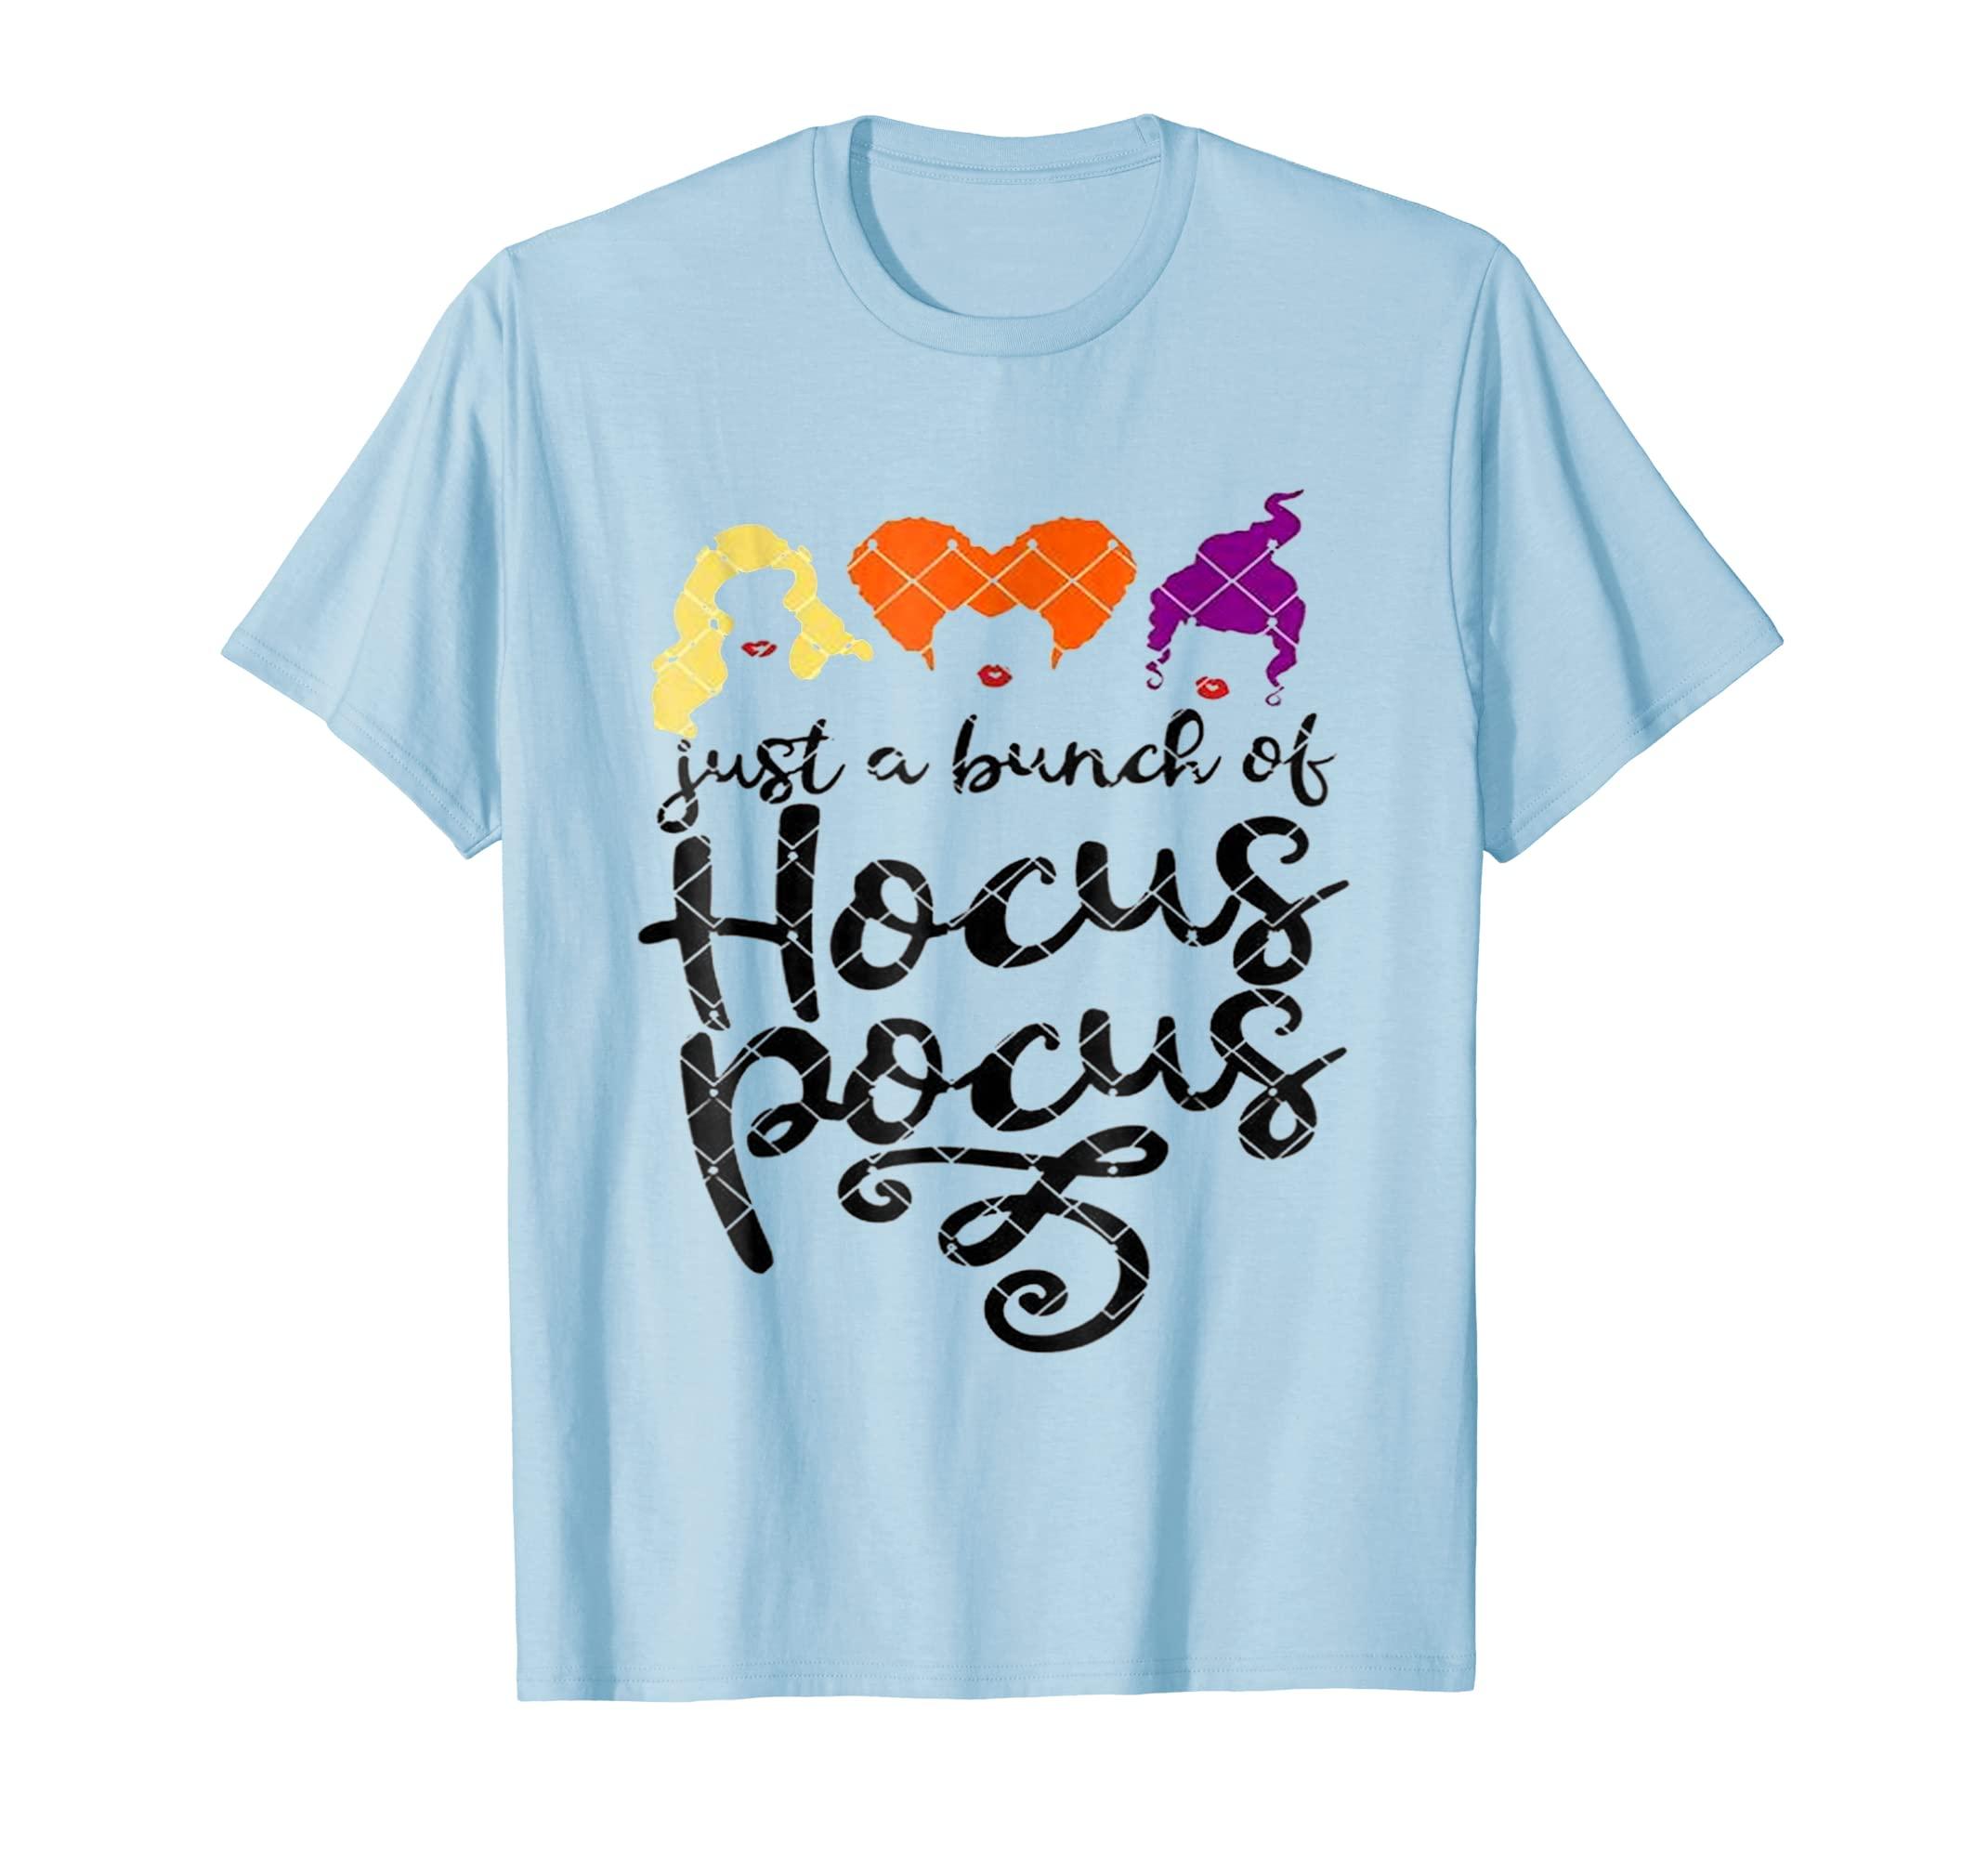 It's just a bunch of hocus pocus t-shirts-Rose